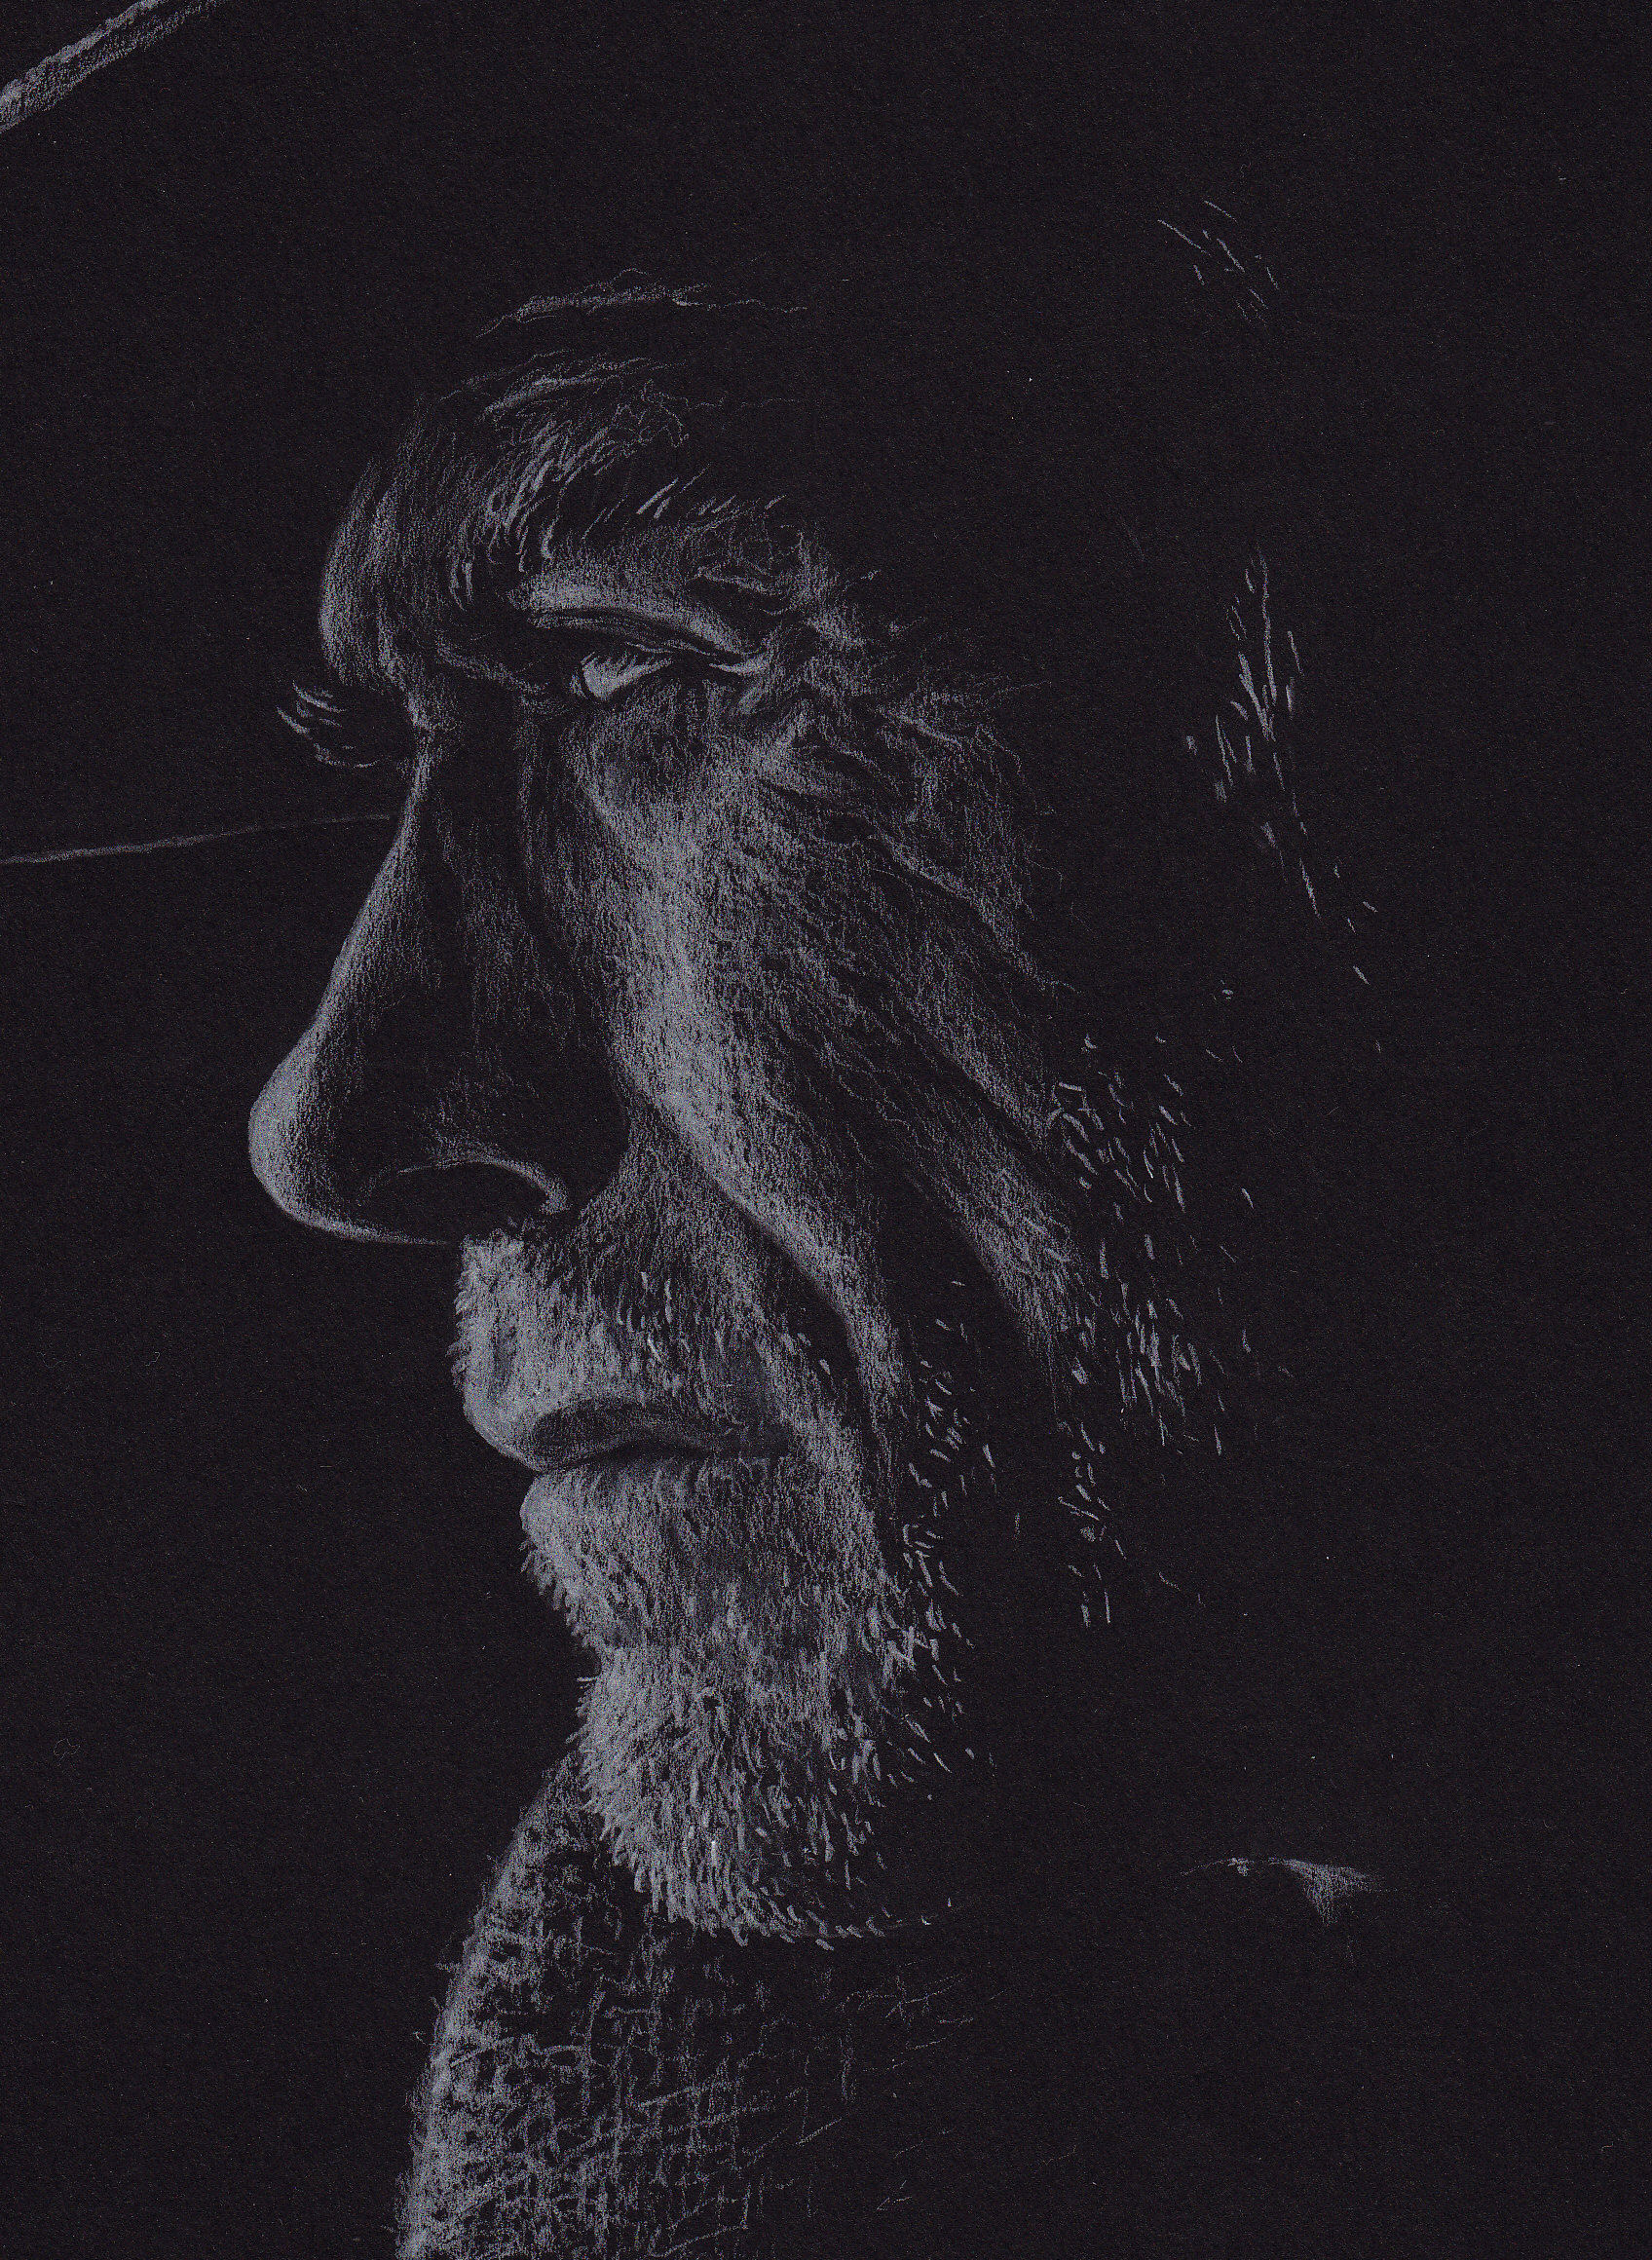 Clint Eastwood - SOLD